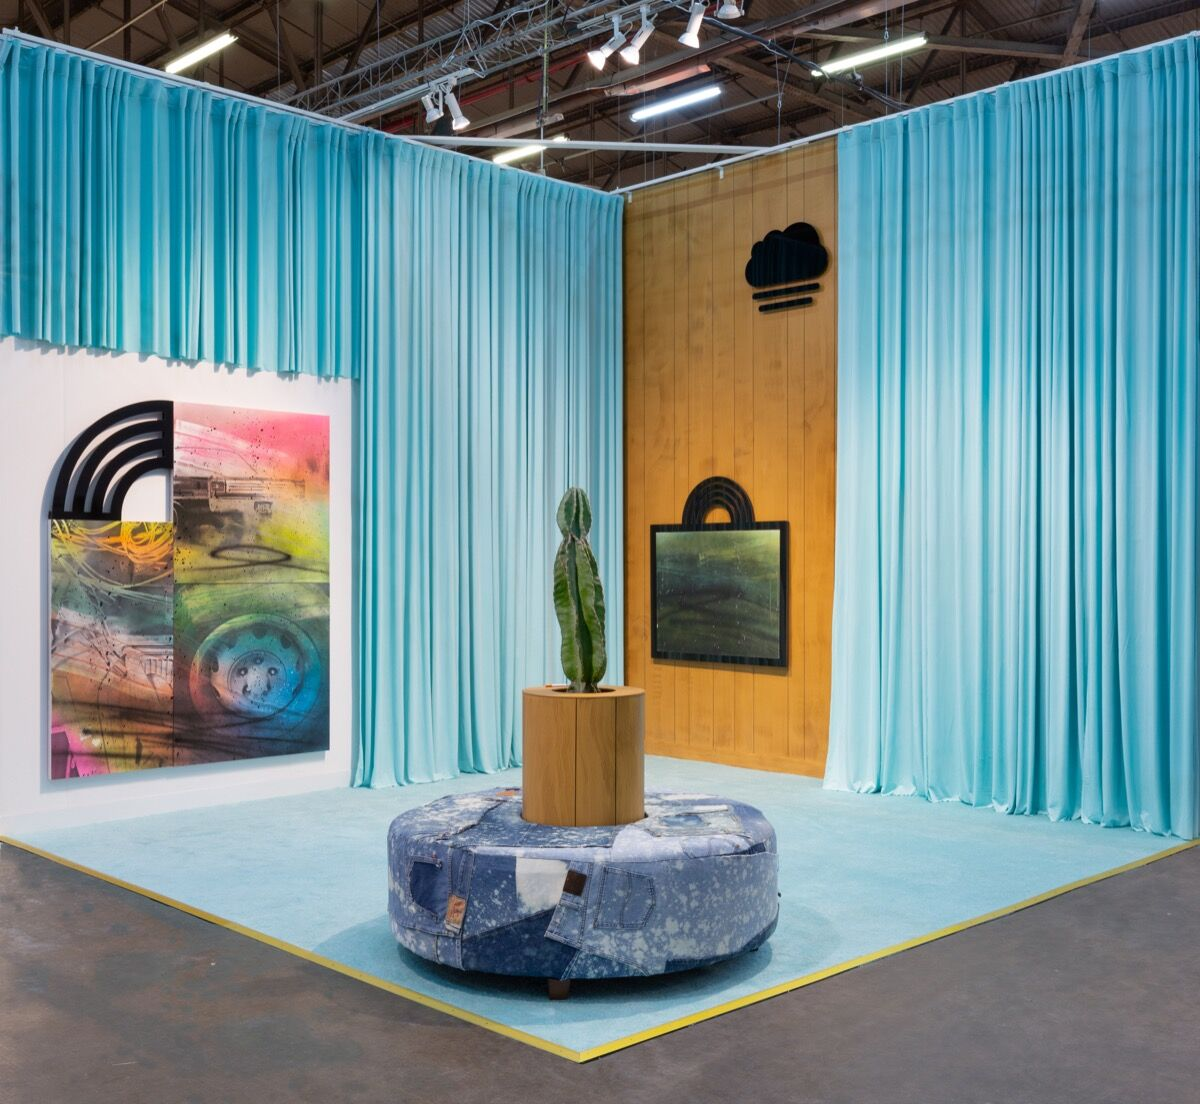 Wendy White, installation view in Shulamit Nazarian's booth at The Armory Show, New York, 2020. Courtesy of the artist and Shulamit Nazarian, Los Angeles.